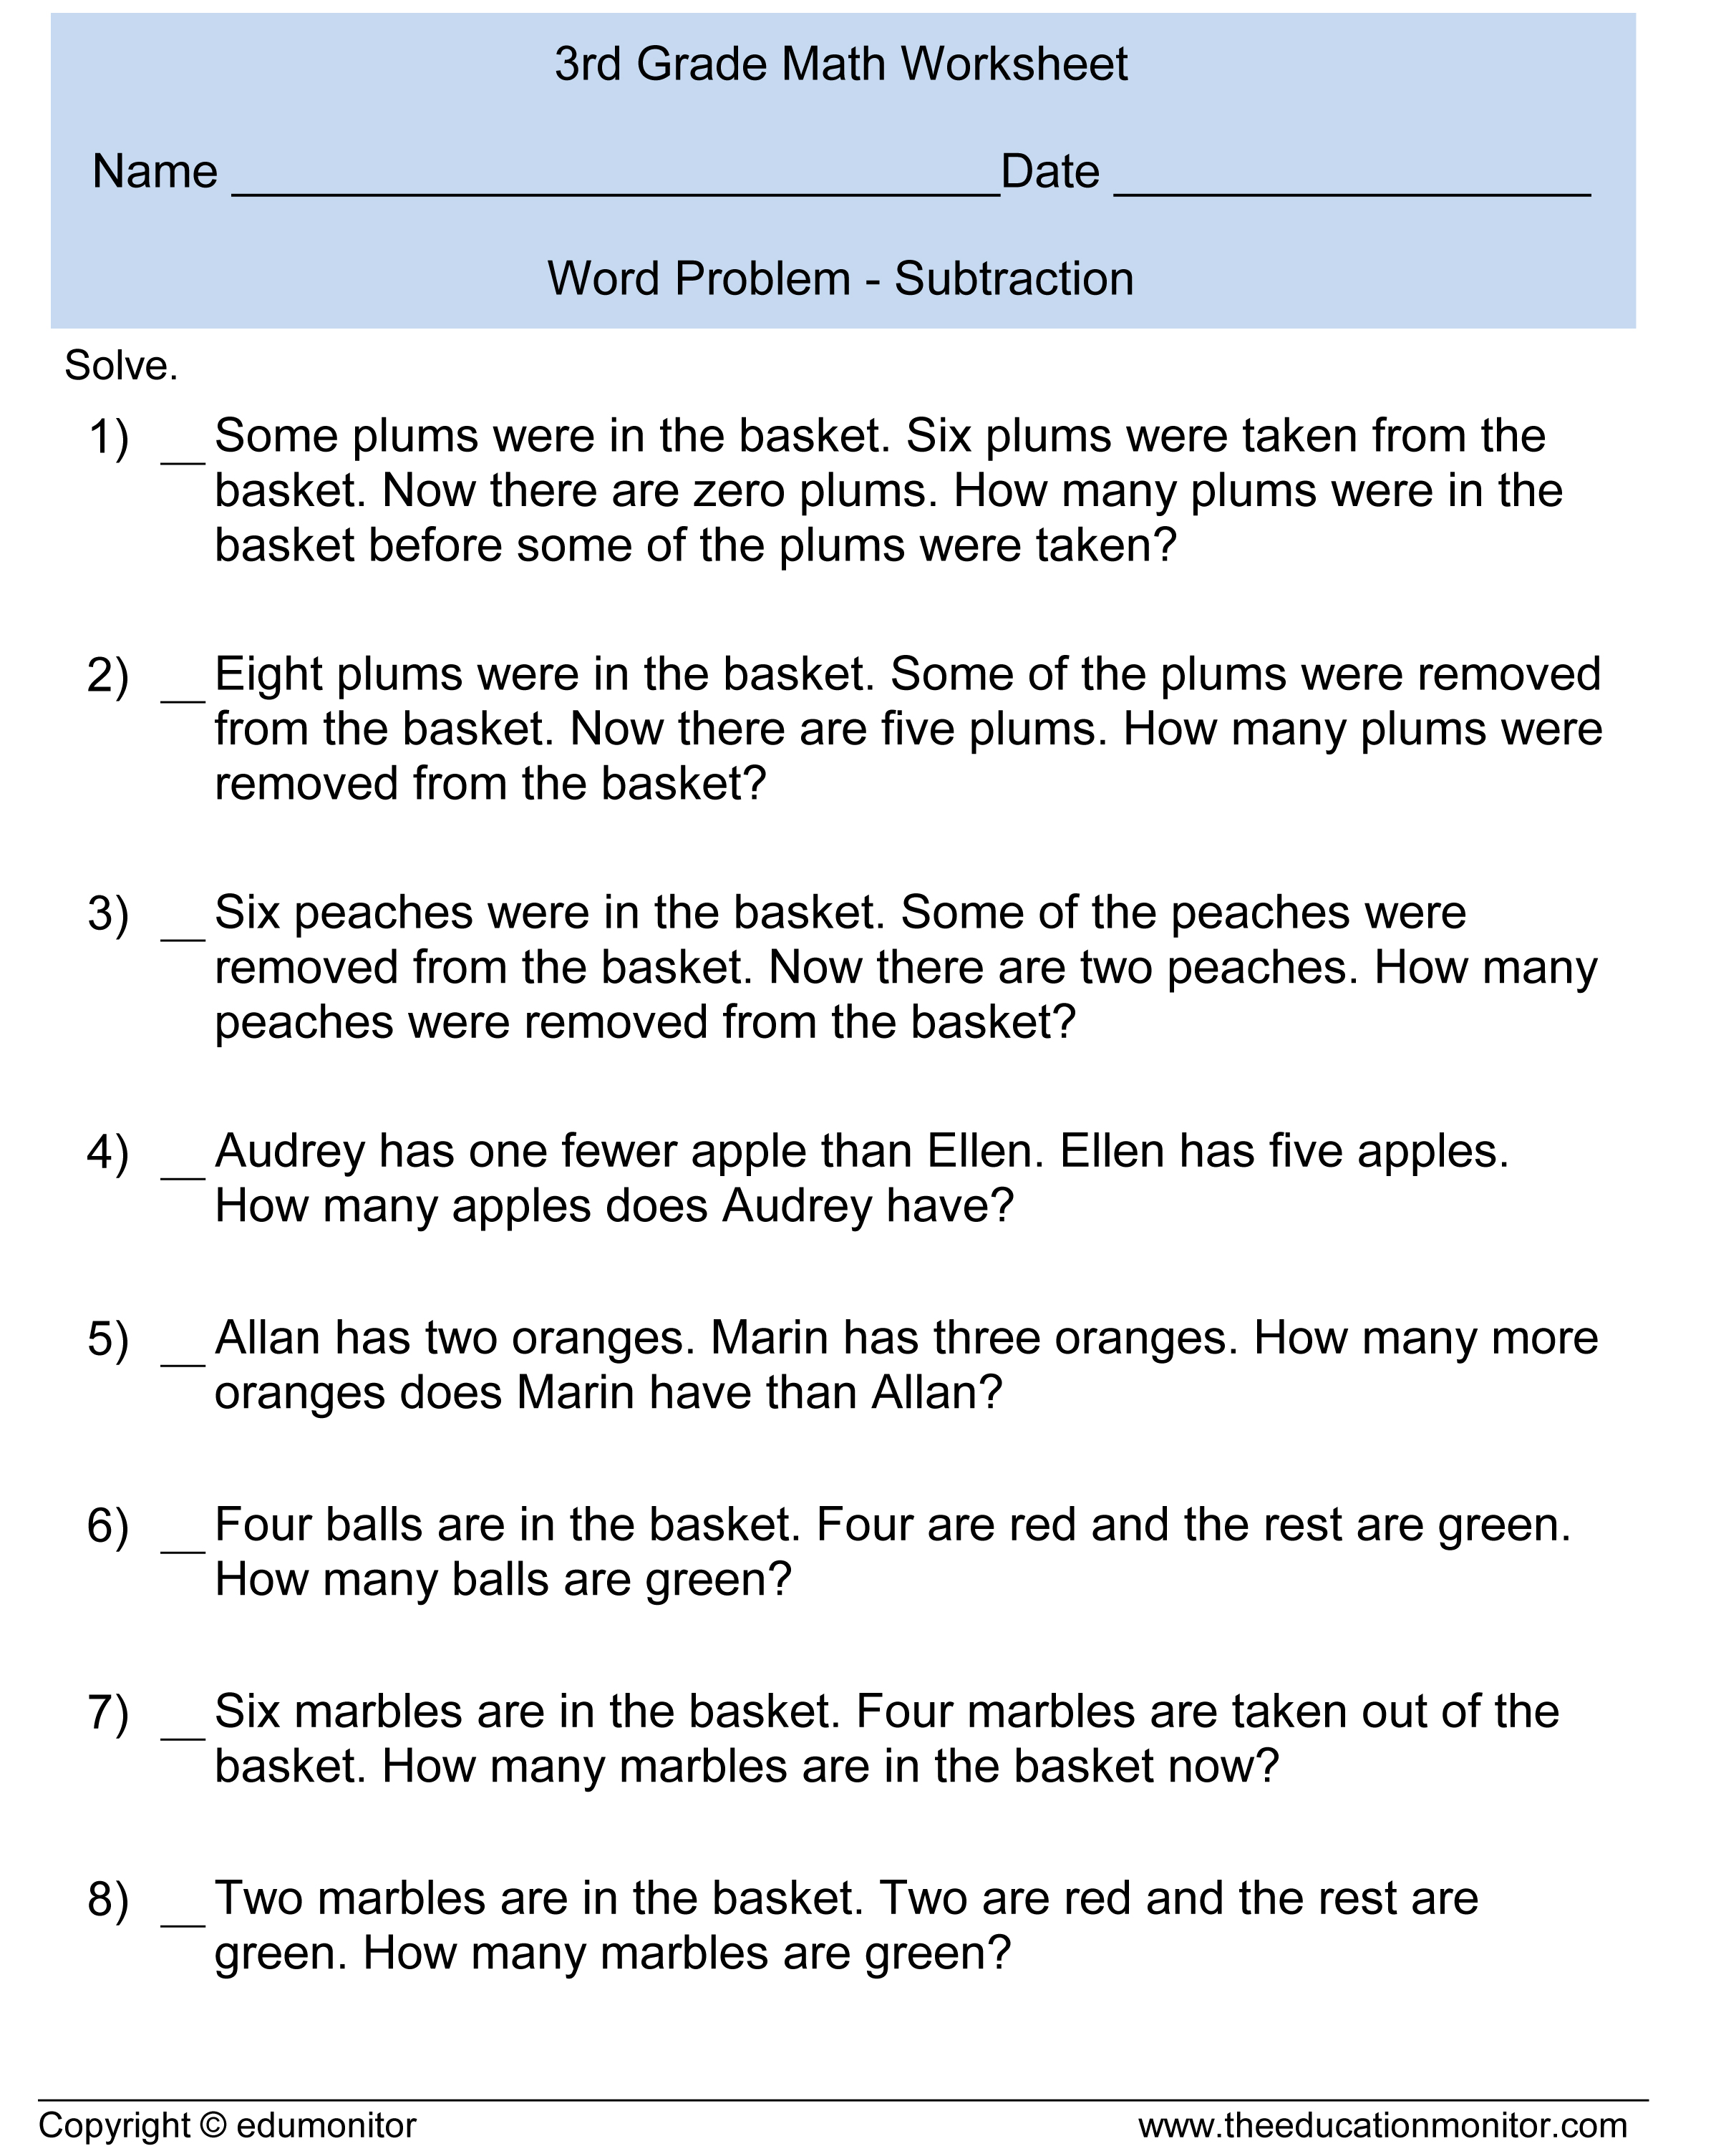 Worksheet Subtraction Word Problems 3rd Grade third grade subtraction word problems3rd math document